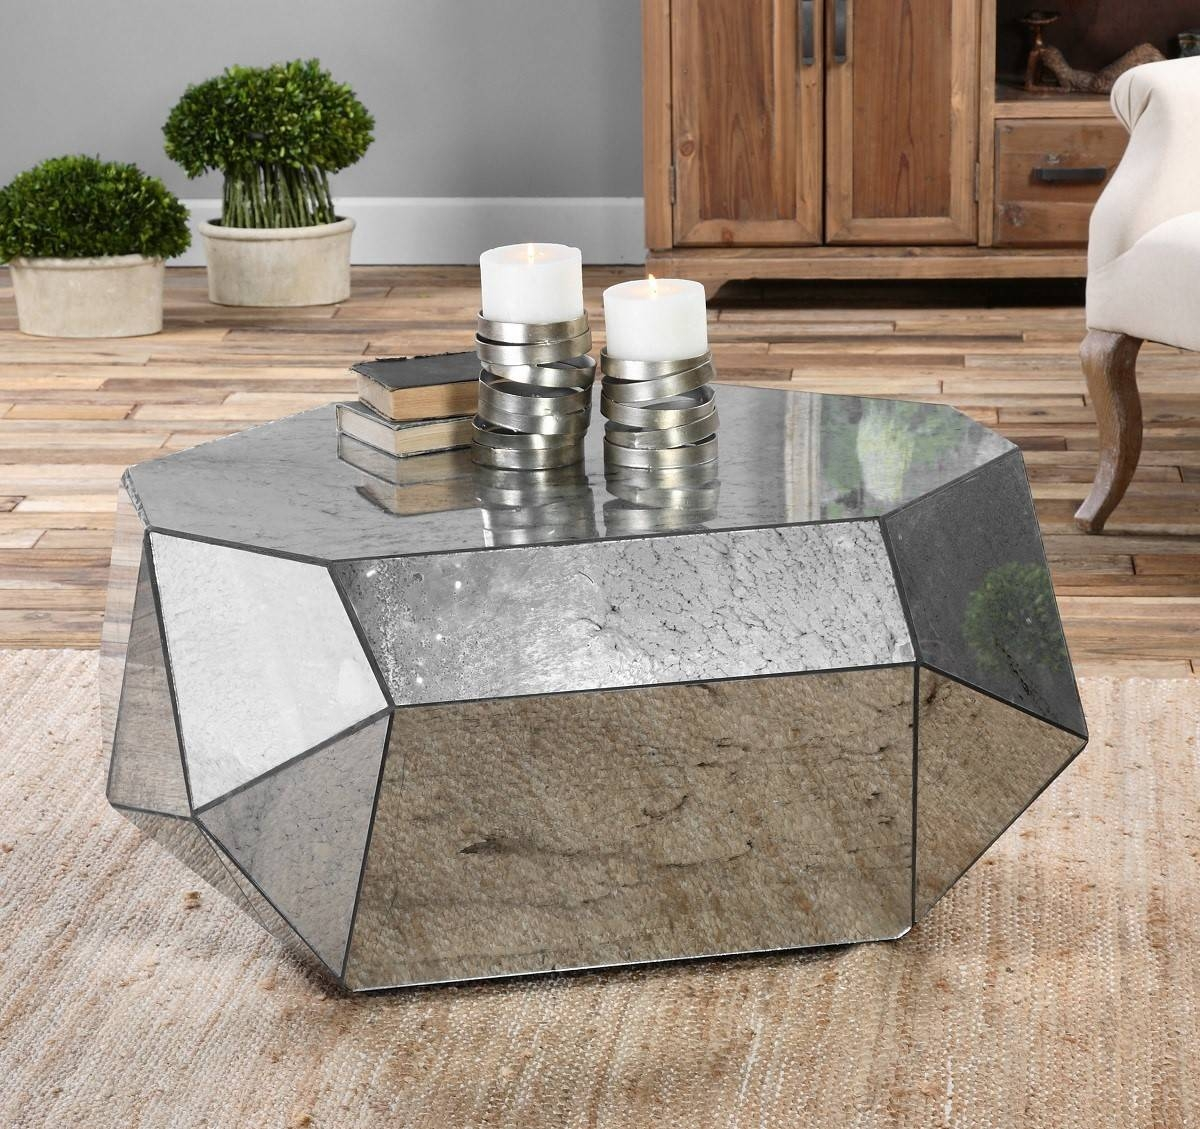 Furniture. Mirrored Coffee Tables Ideas: Square Antique Mirrored with regard to Antique Mirrored Coffee Tables (Image 12 of 30)